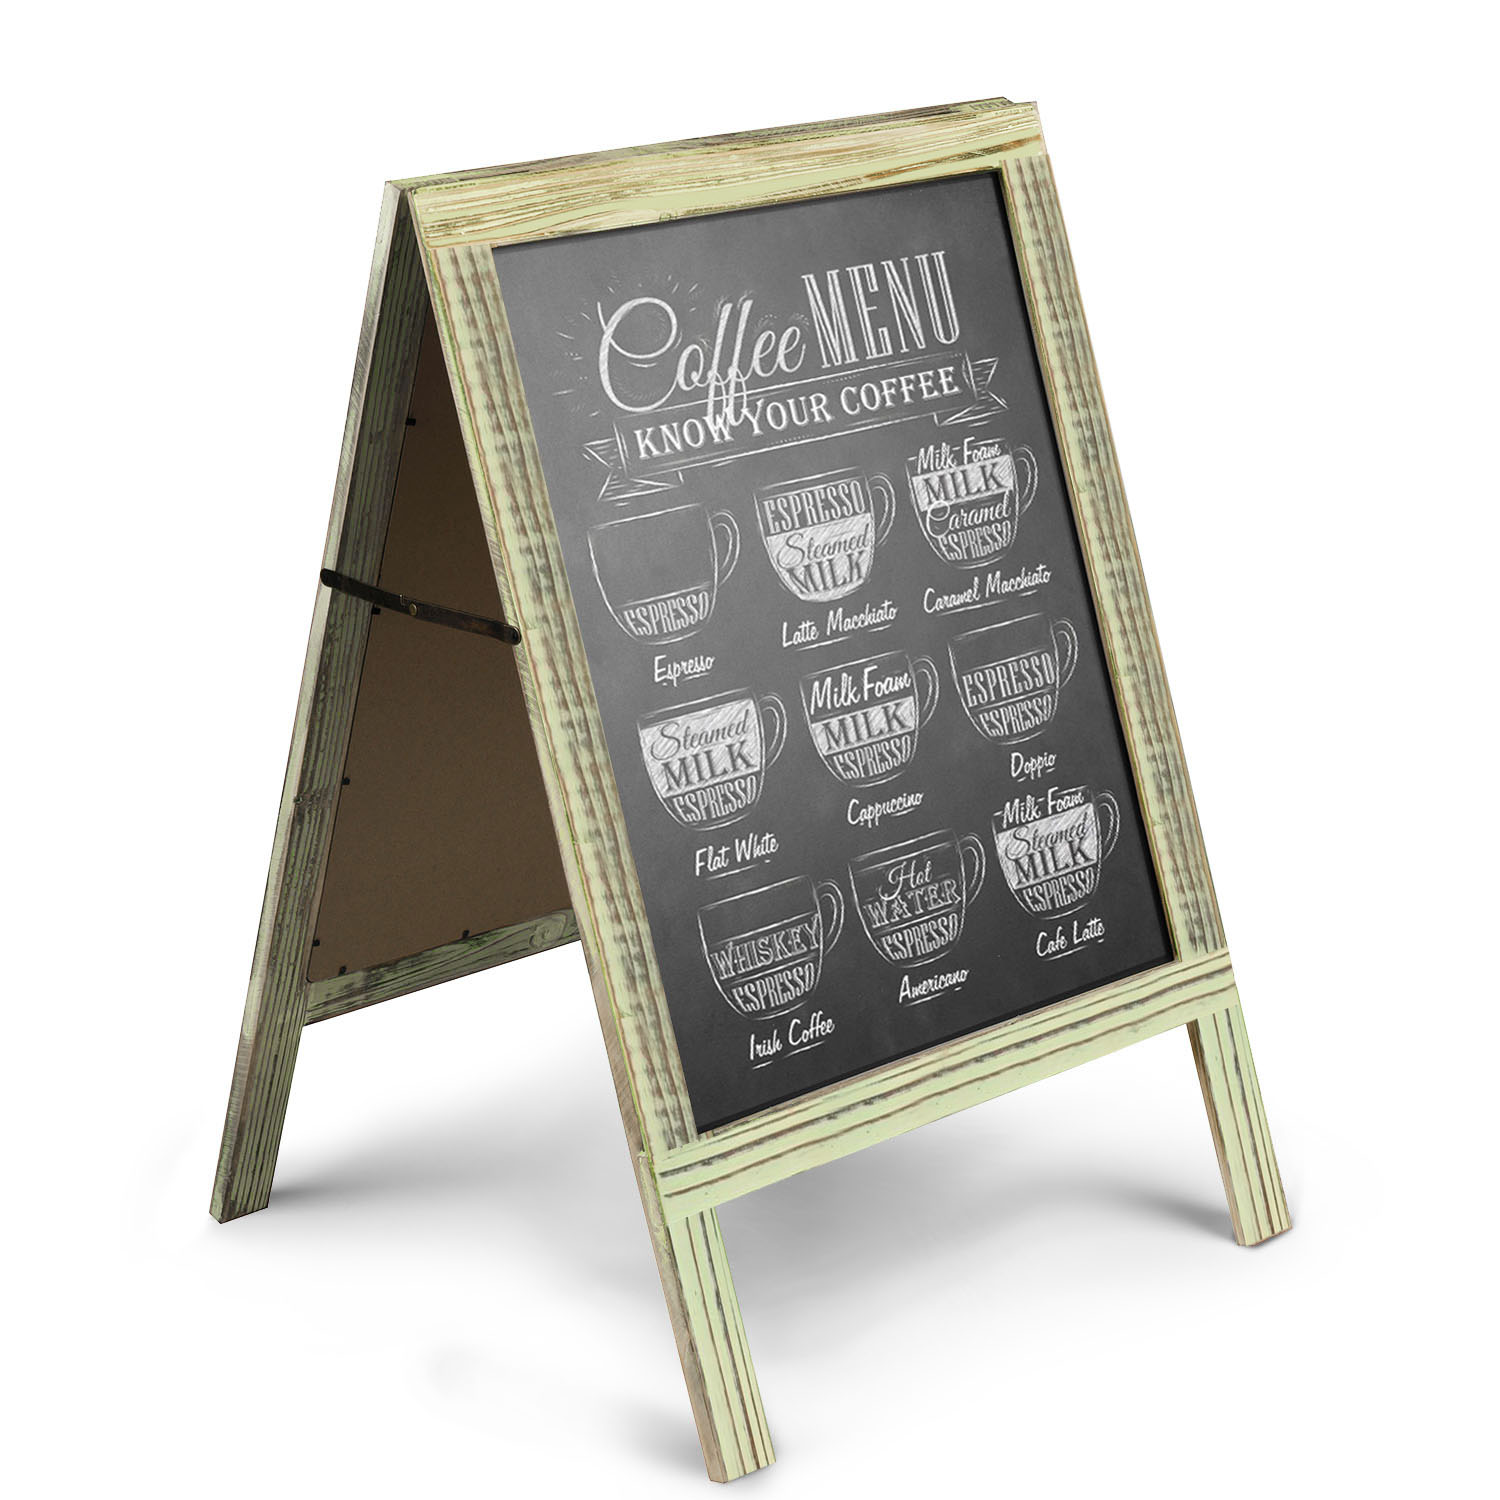 A Frame Chalkboard Sign Rustic Wooden Sidewalk Easel Chalk Stand Freestanding Sturdy Sandwich Board Double Sided Message Menu Display Vintage Torched Restaurant Chalkboard For Cafe Bar Walmart Com Walmart Com